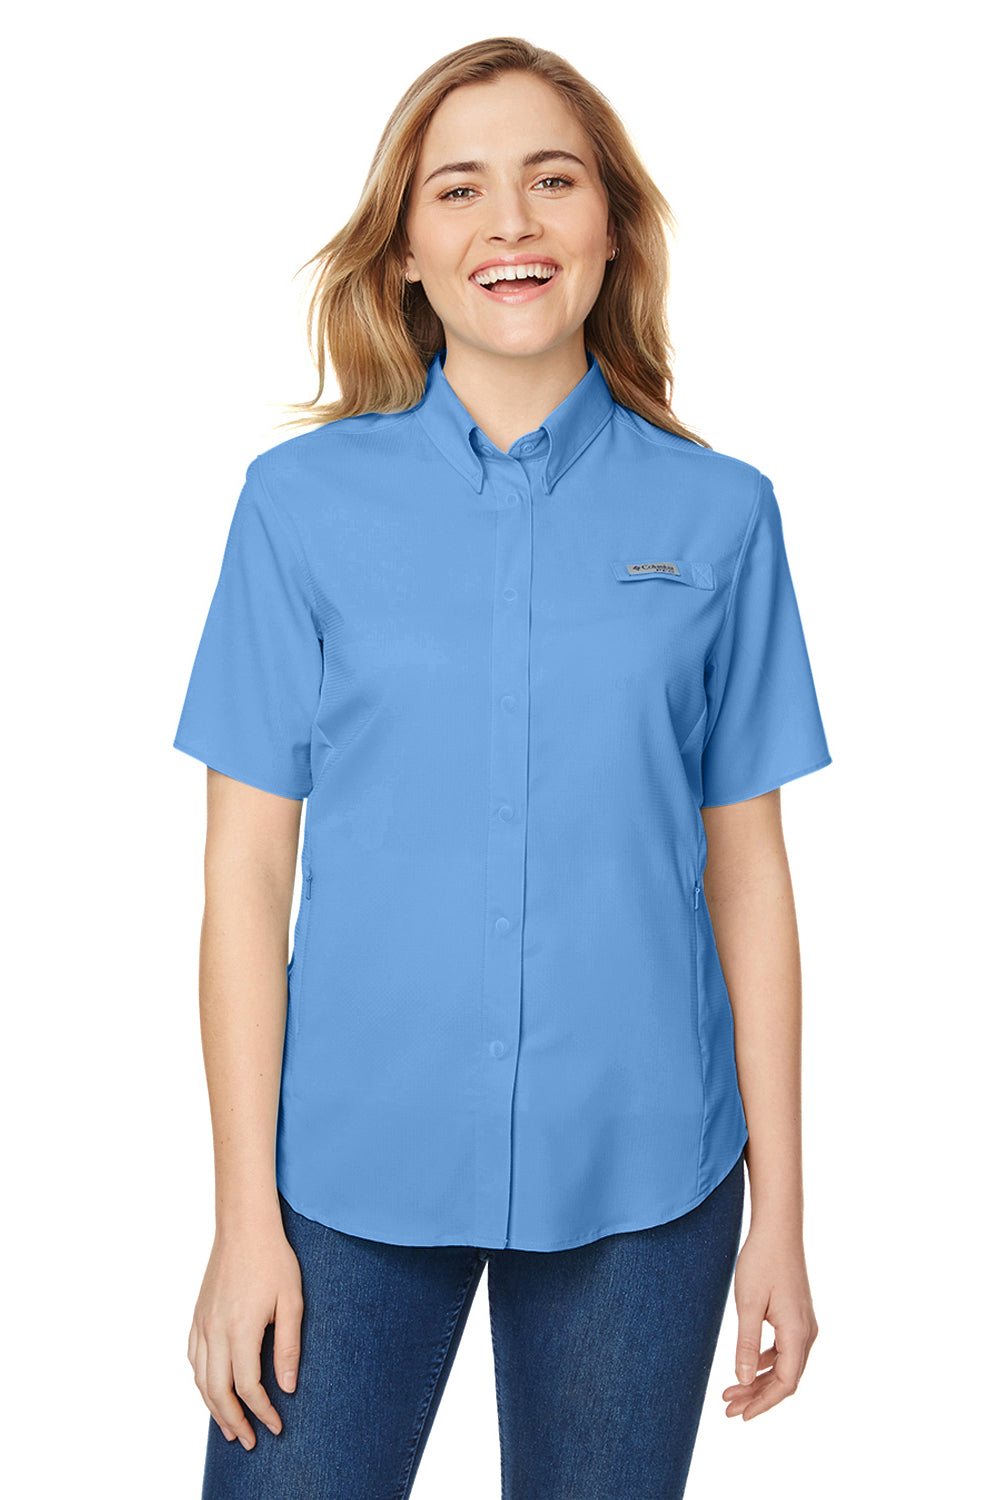 Columbia 7277 Womens Tamiami II Moisture Wicking Short Sleeve Button Down Shirt w/ Double Pockets White Cap Blue Front